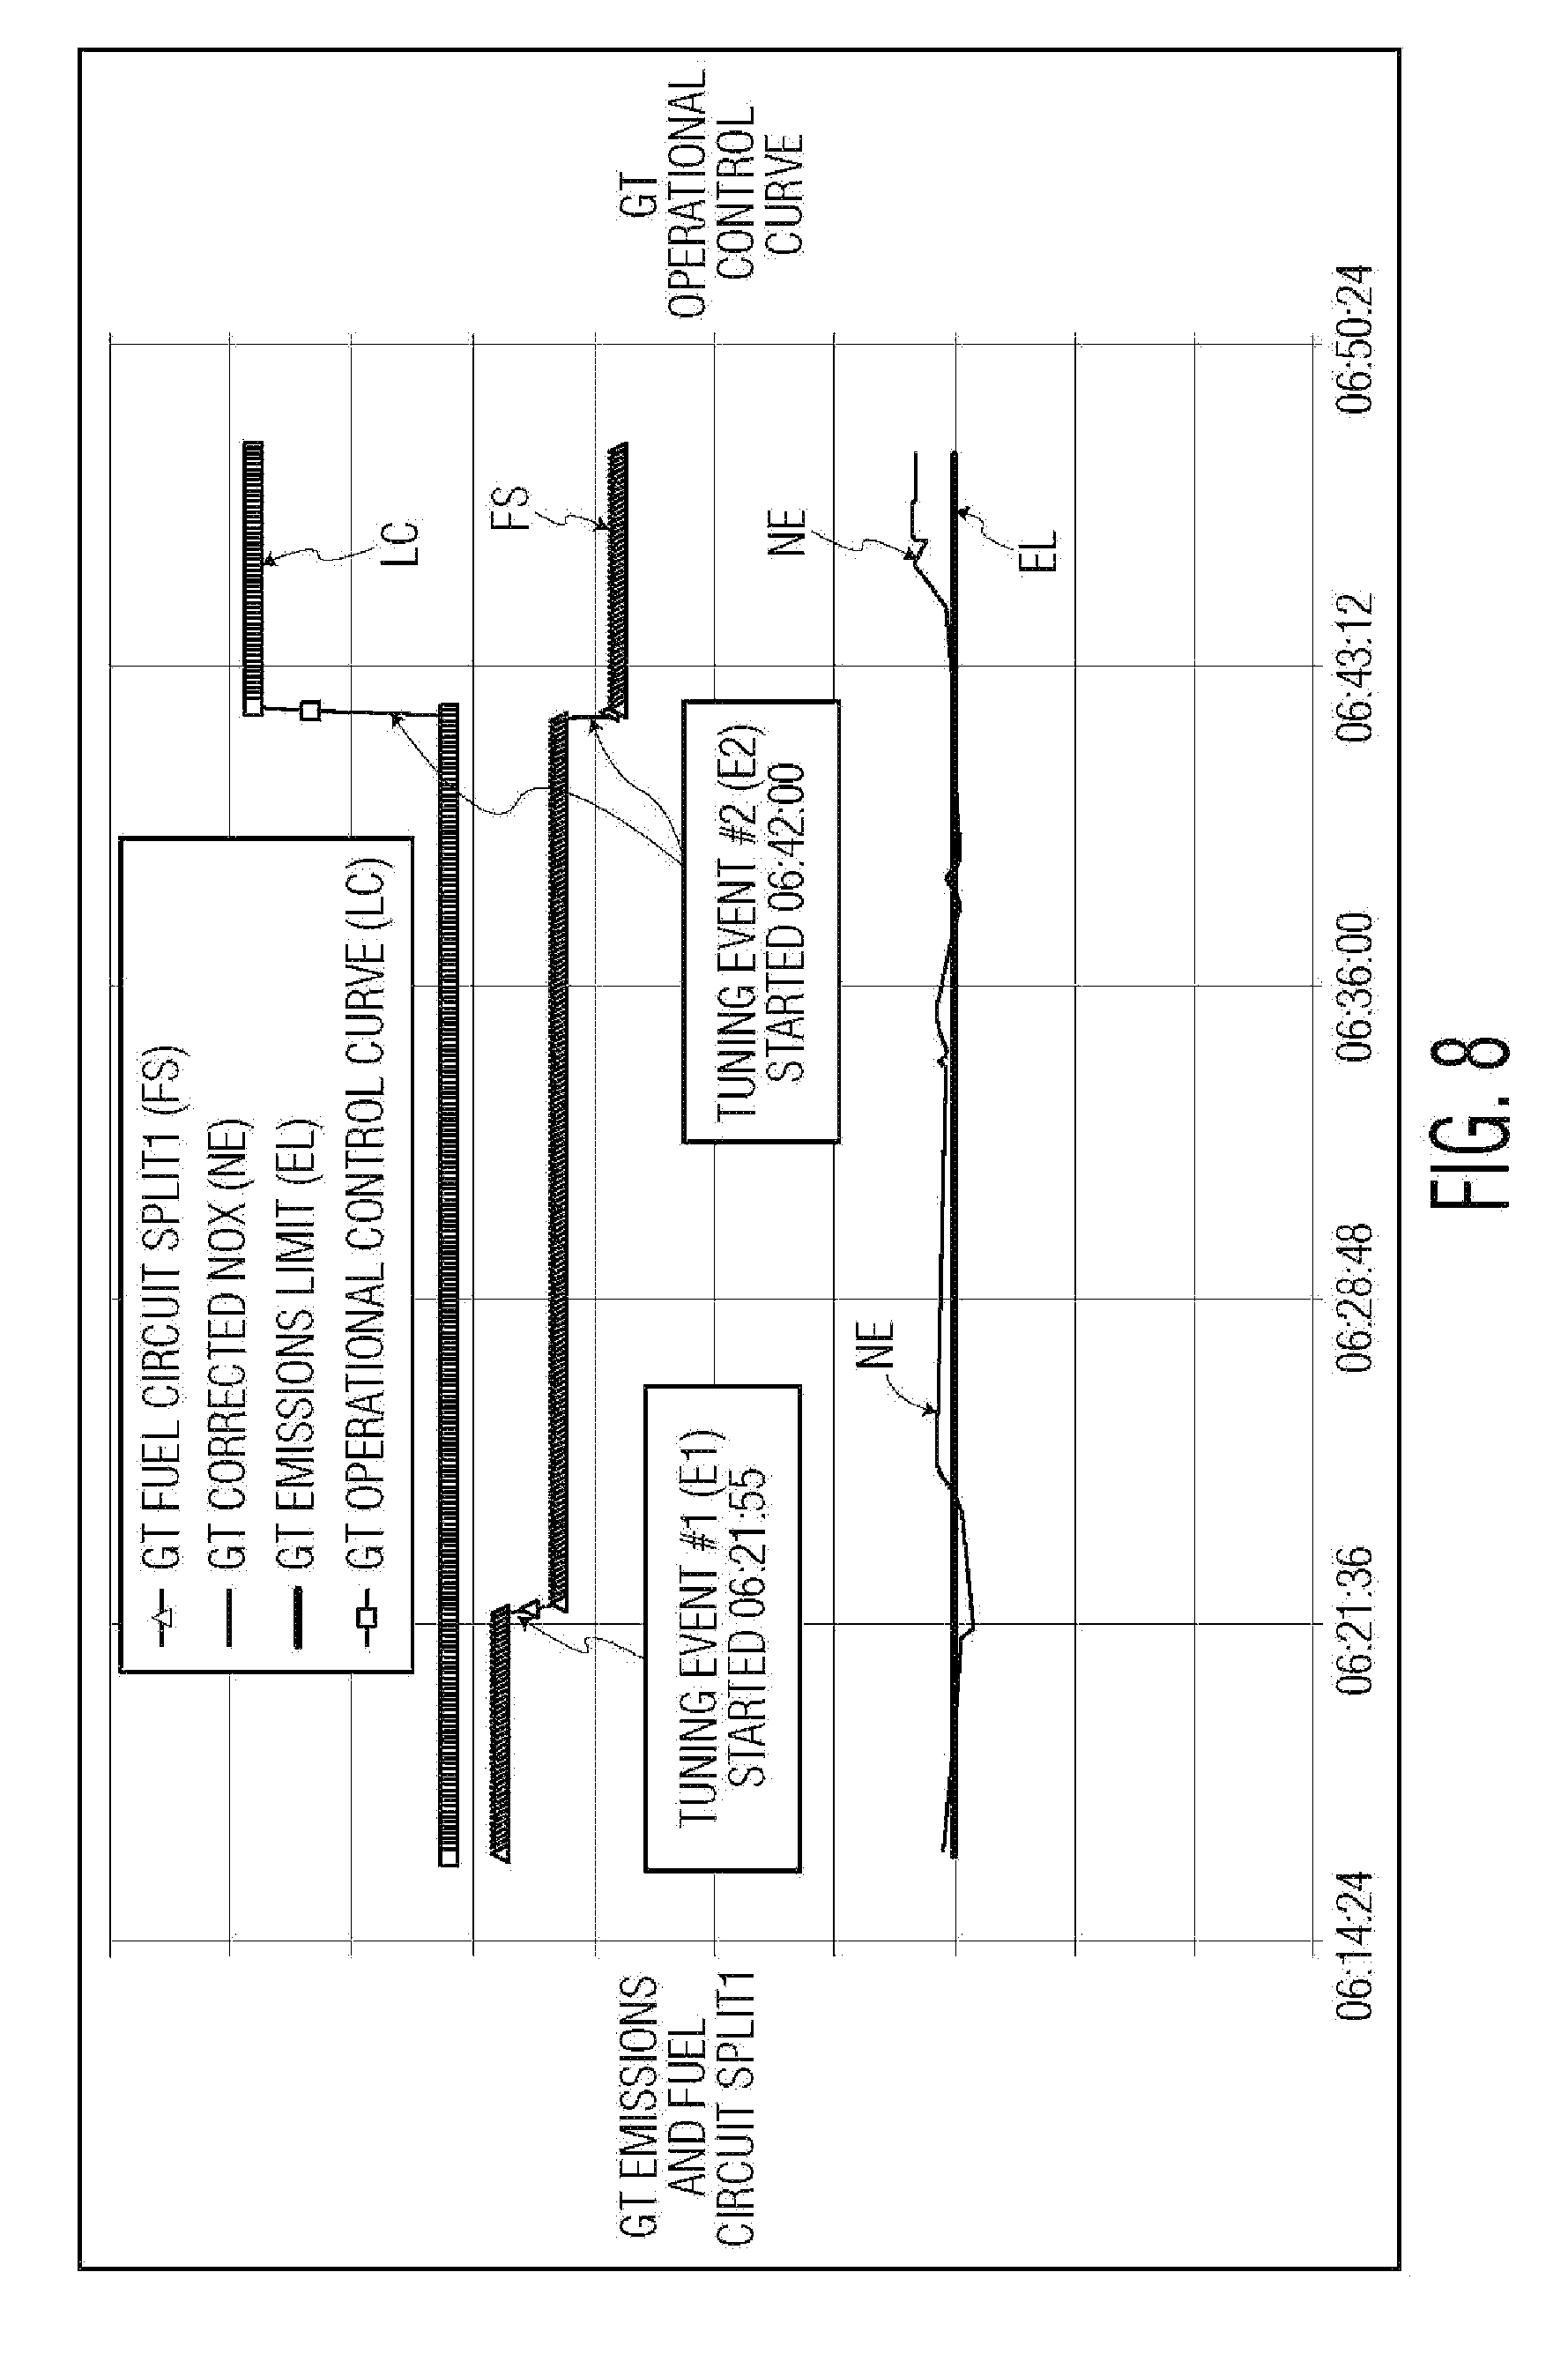 Brevet US Automated tuning of gas turbine bustion